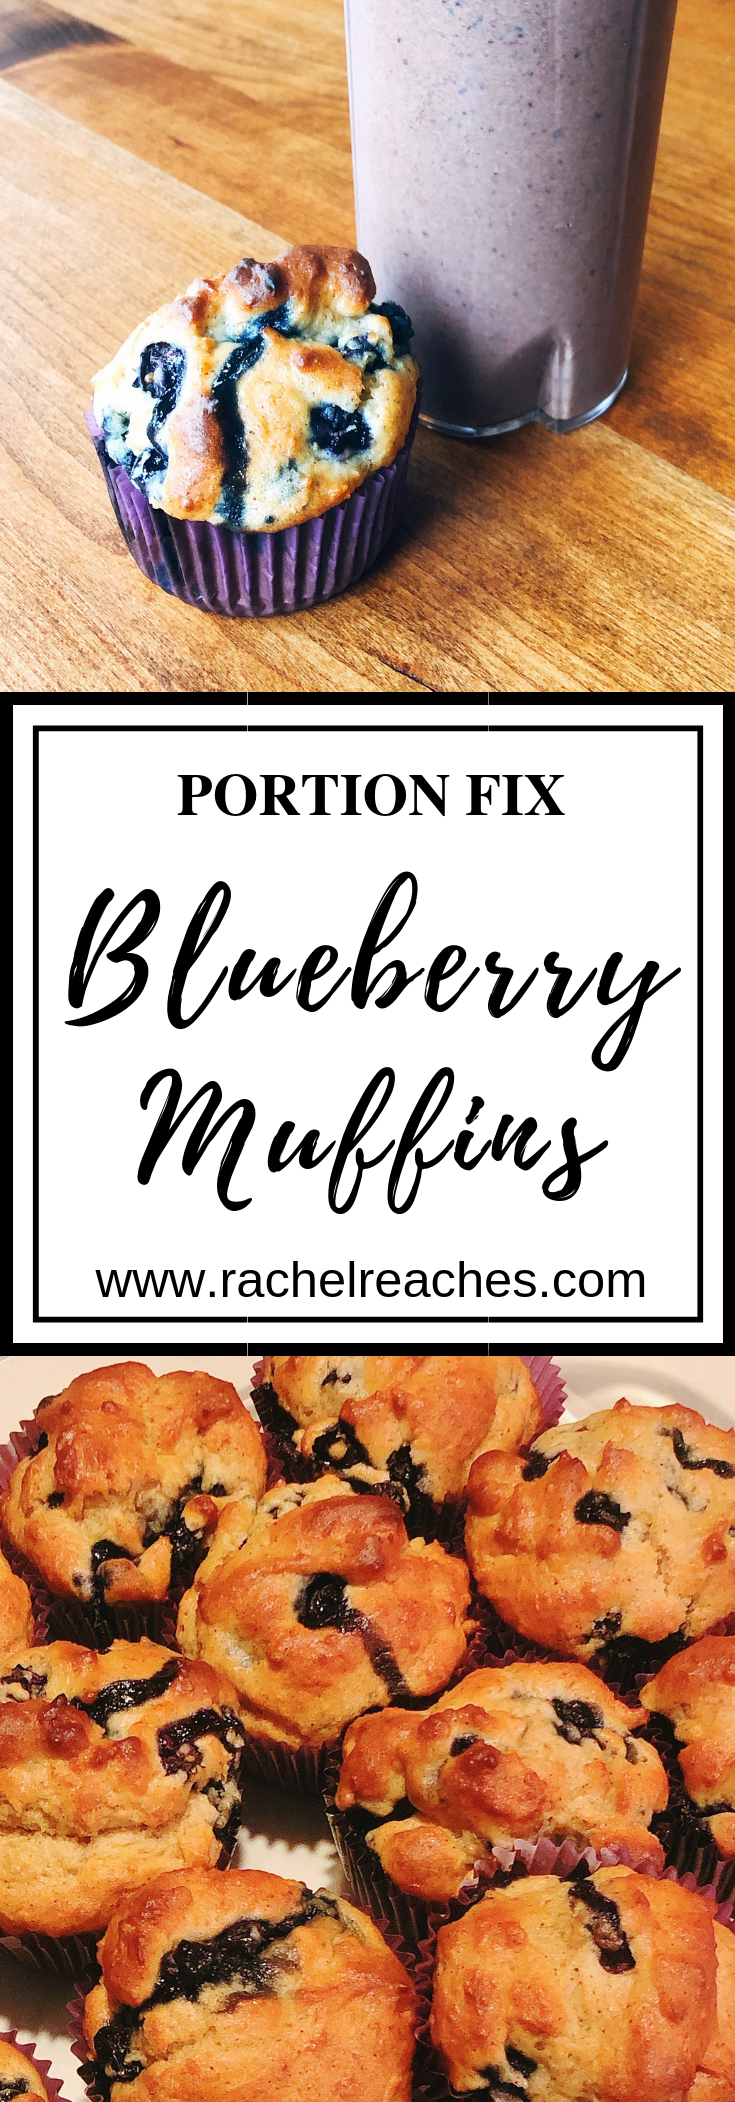 Blueberry Muffins - UPF.png